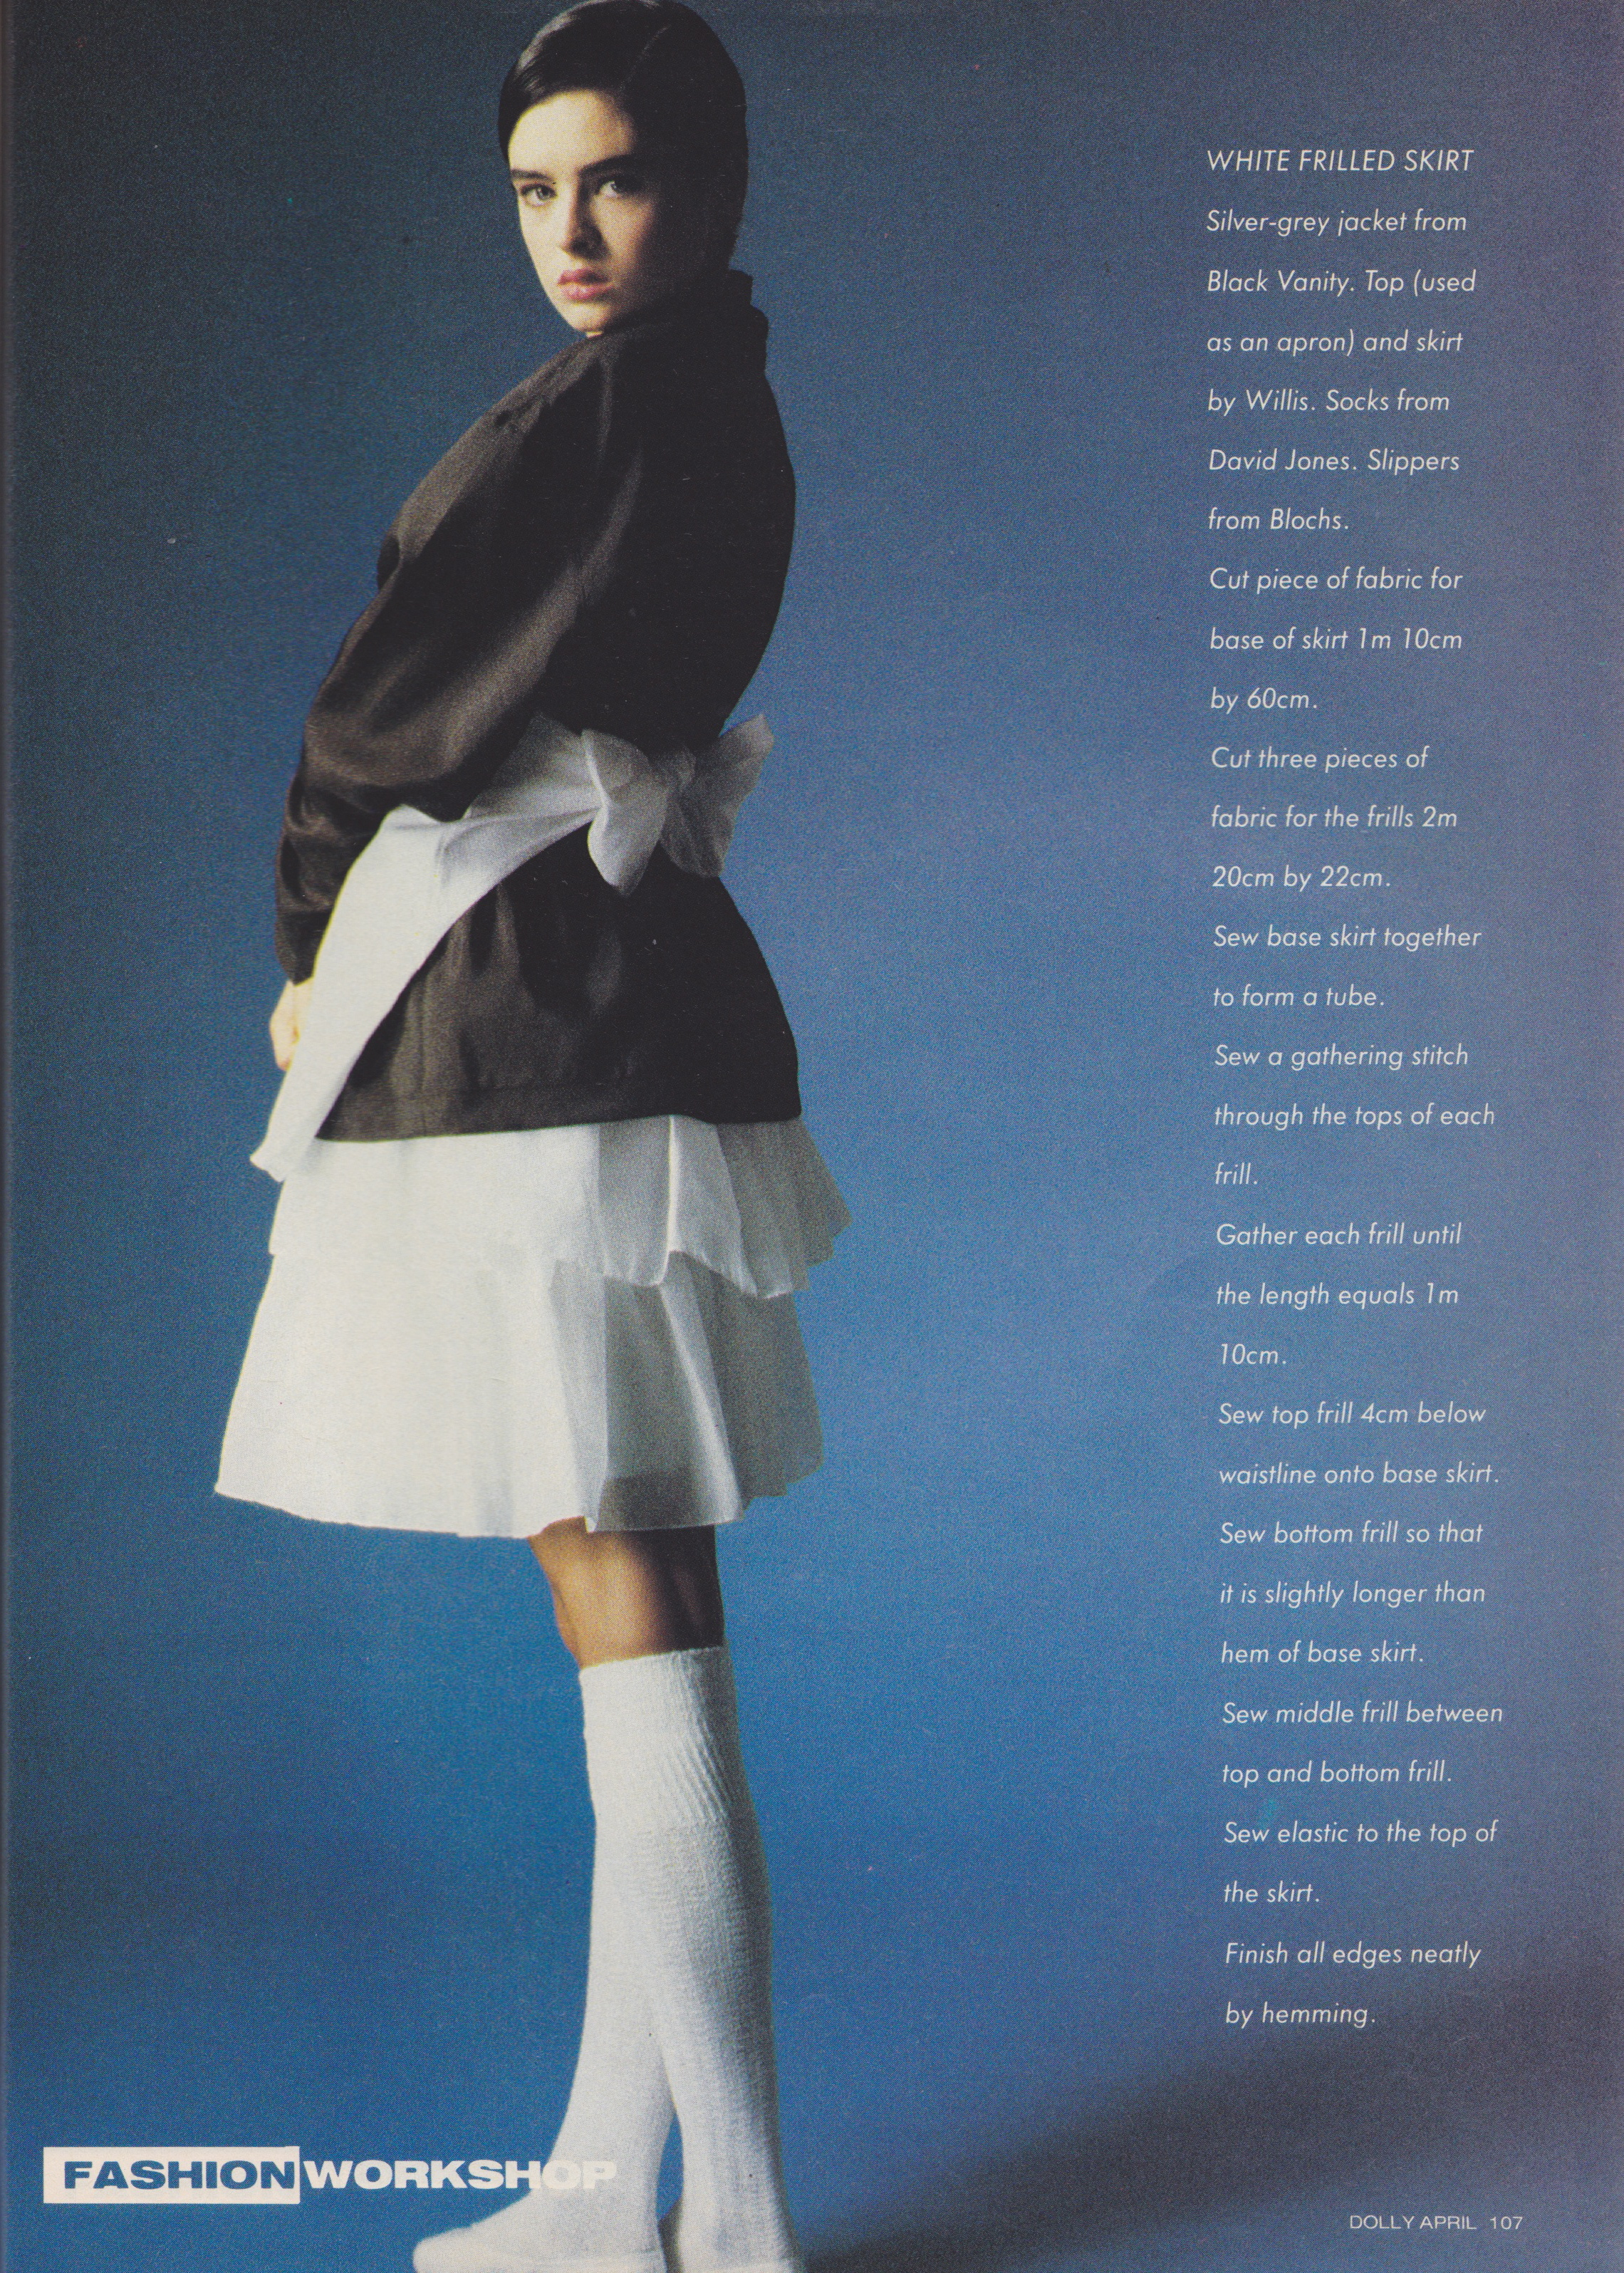 Dolly April 1987 | The Shape Of Skirts To Come (Belinda Riding) 04.jpeg